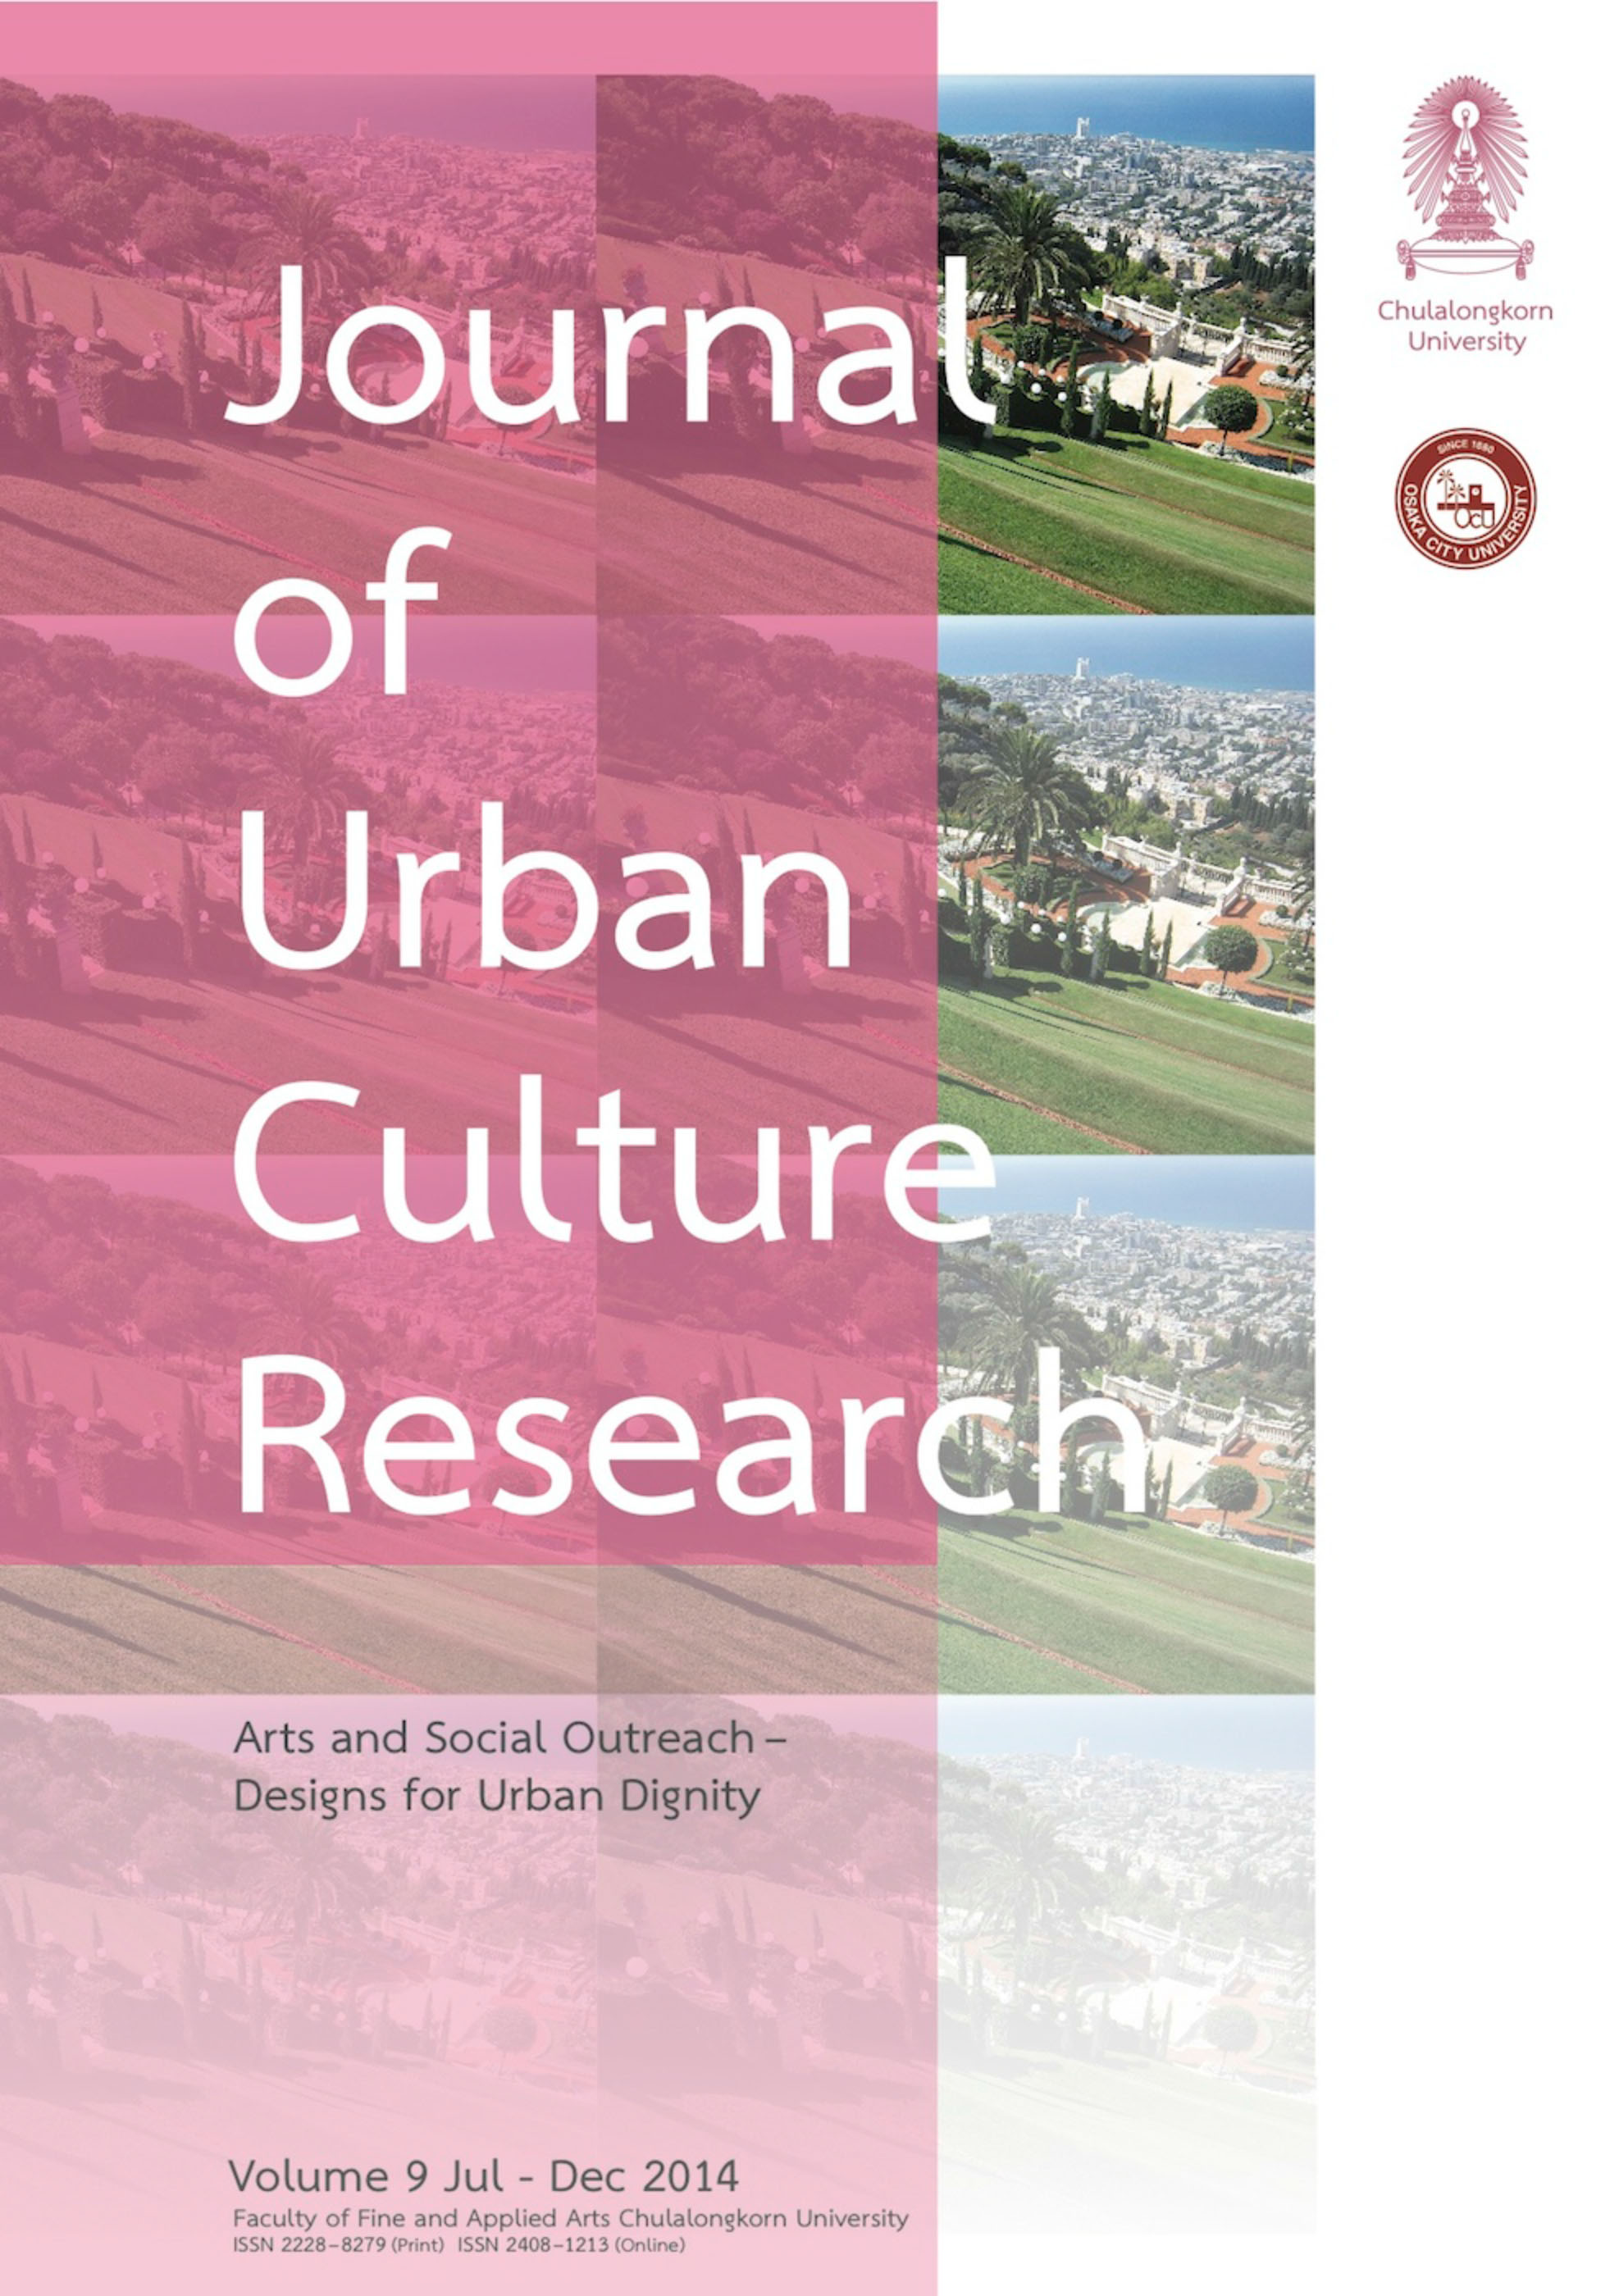 Journal of Urban Culture Research - Cover image of Haifa, Israel from Baha'i Gardens provided by Alan Kinear